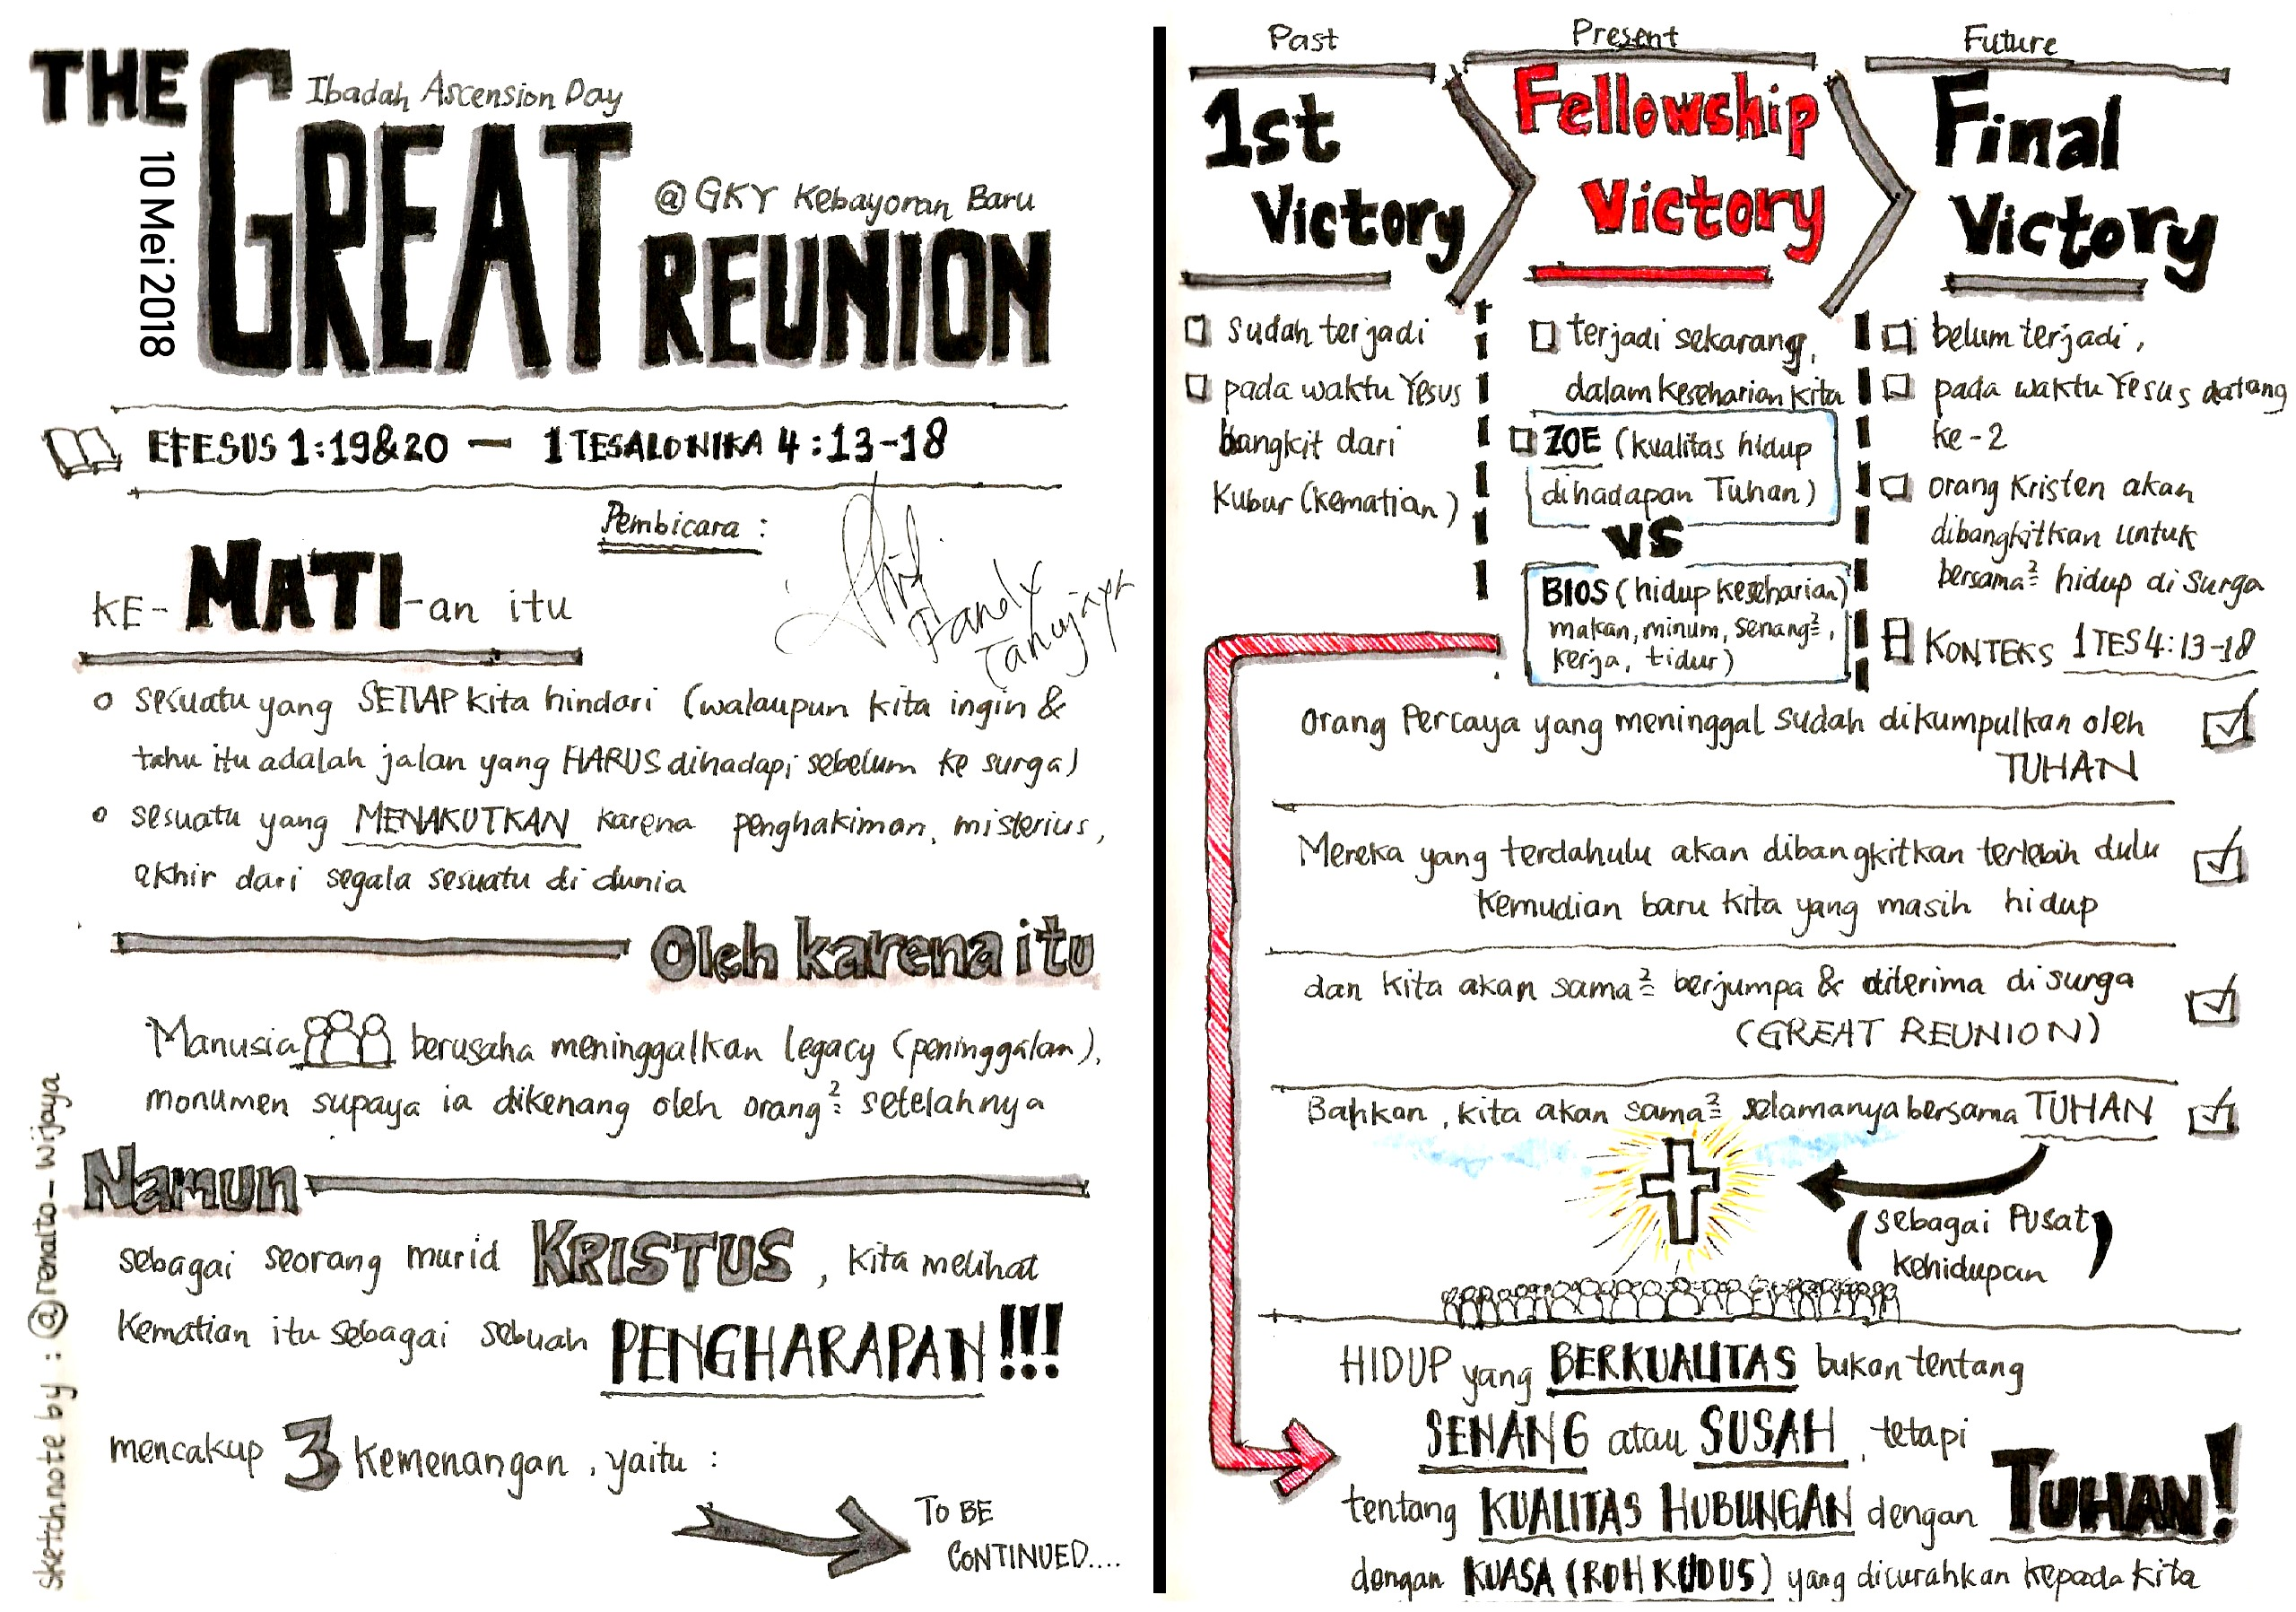 Sermon Note – The Great Reunion Image